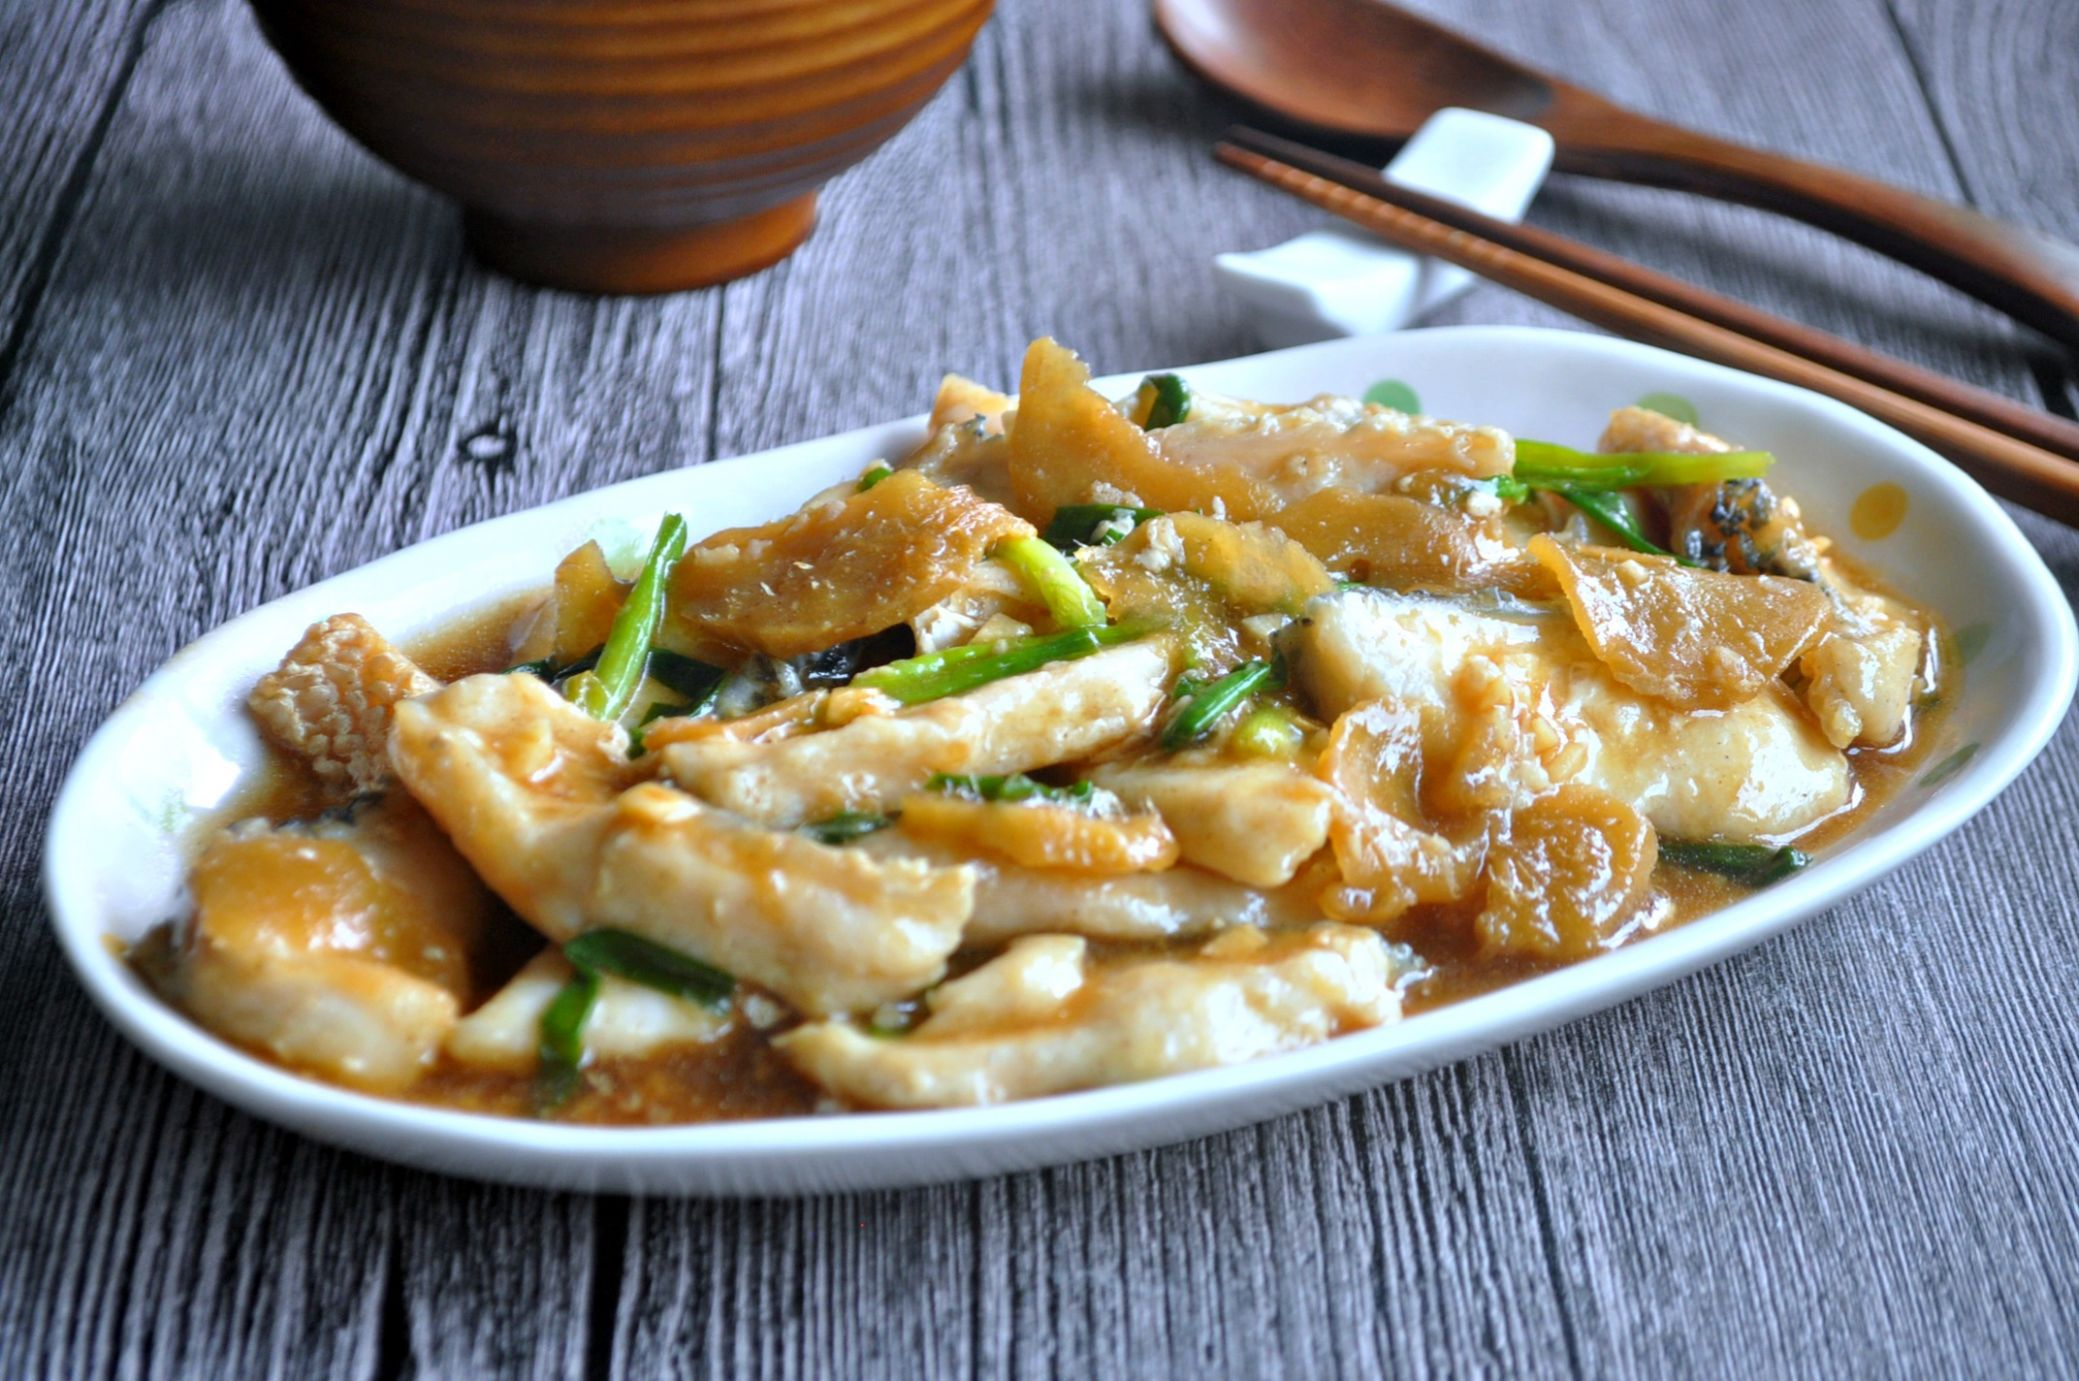 Spring Onion Ginger Fish Fillets 姜葱鱼片